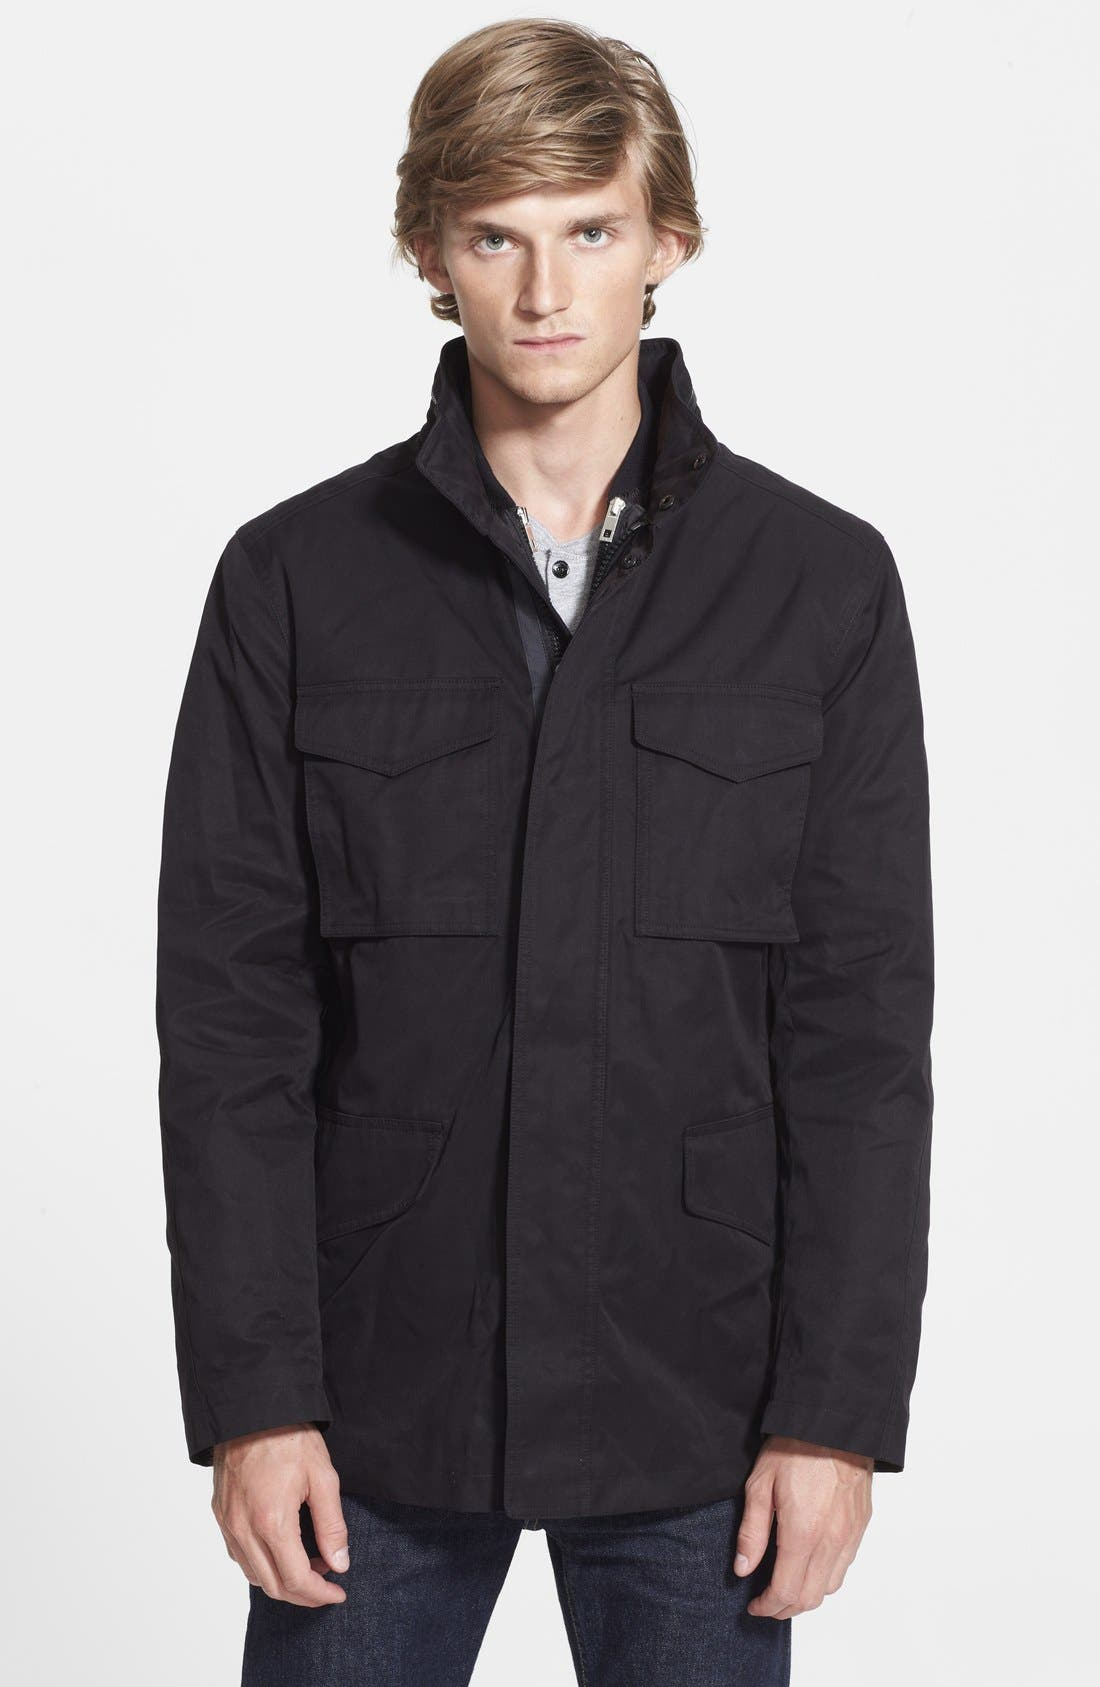 Main Image - rag & bone 'Division' 3-in-1 Field Jacket